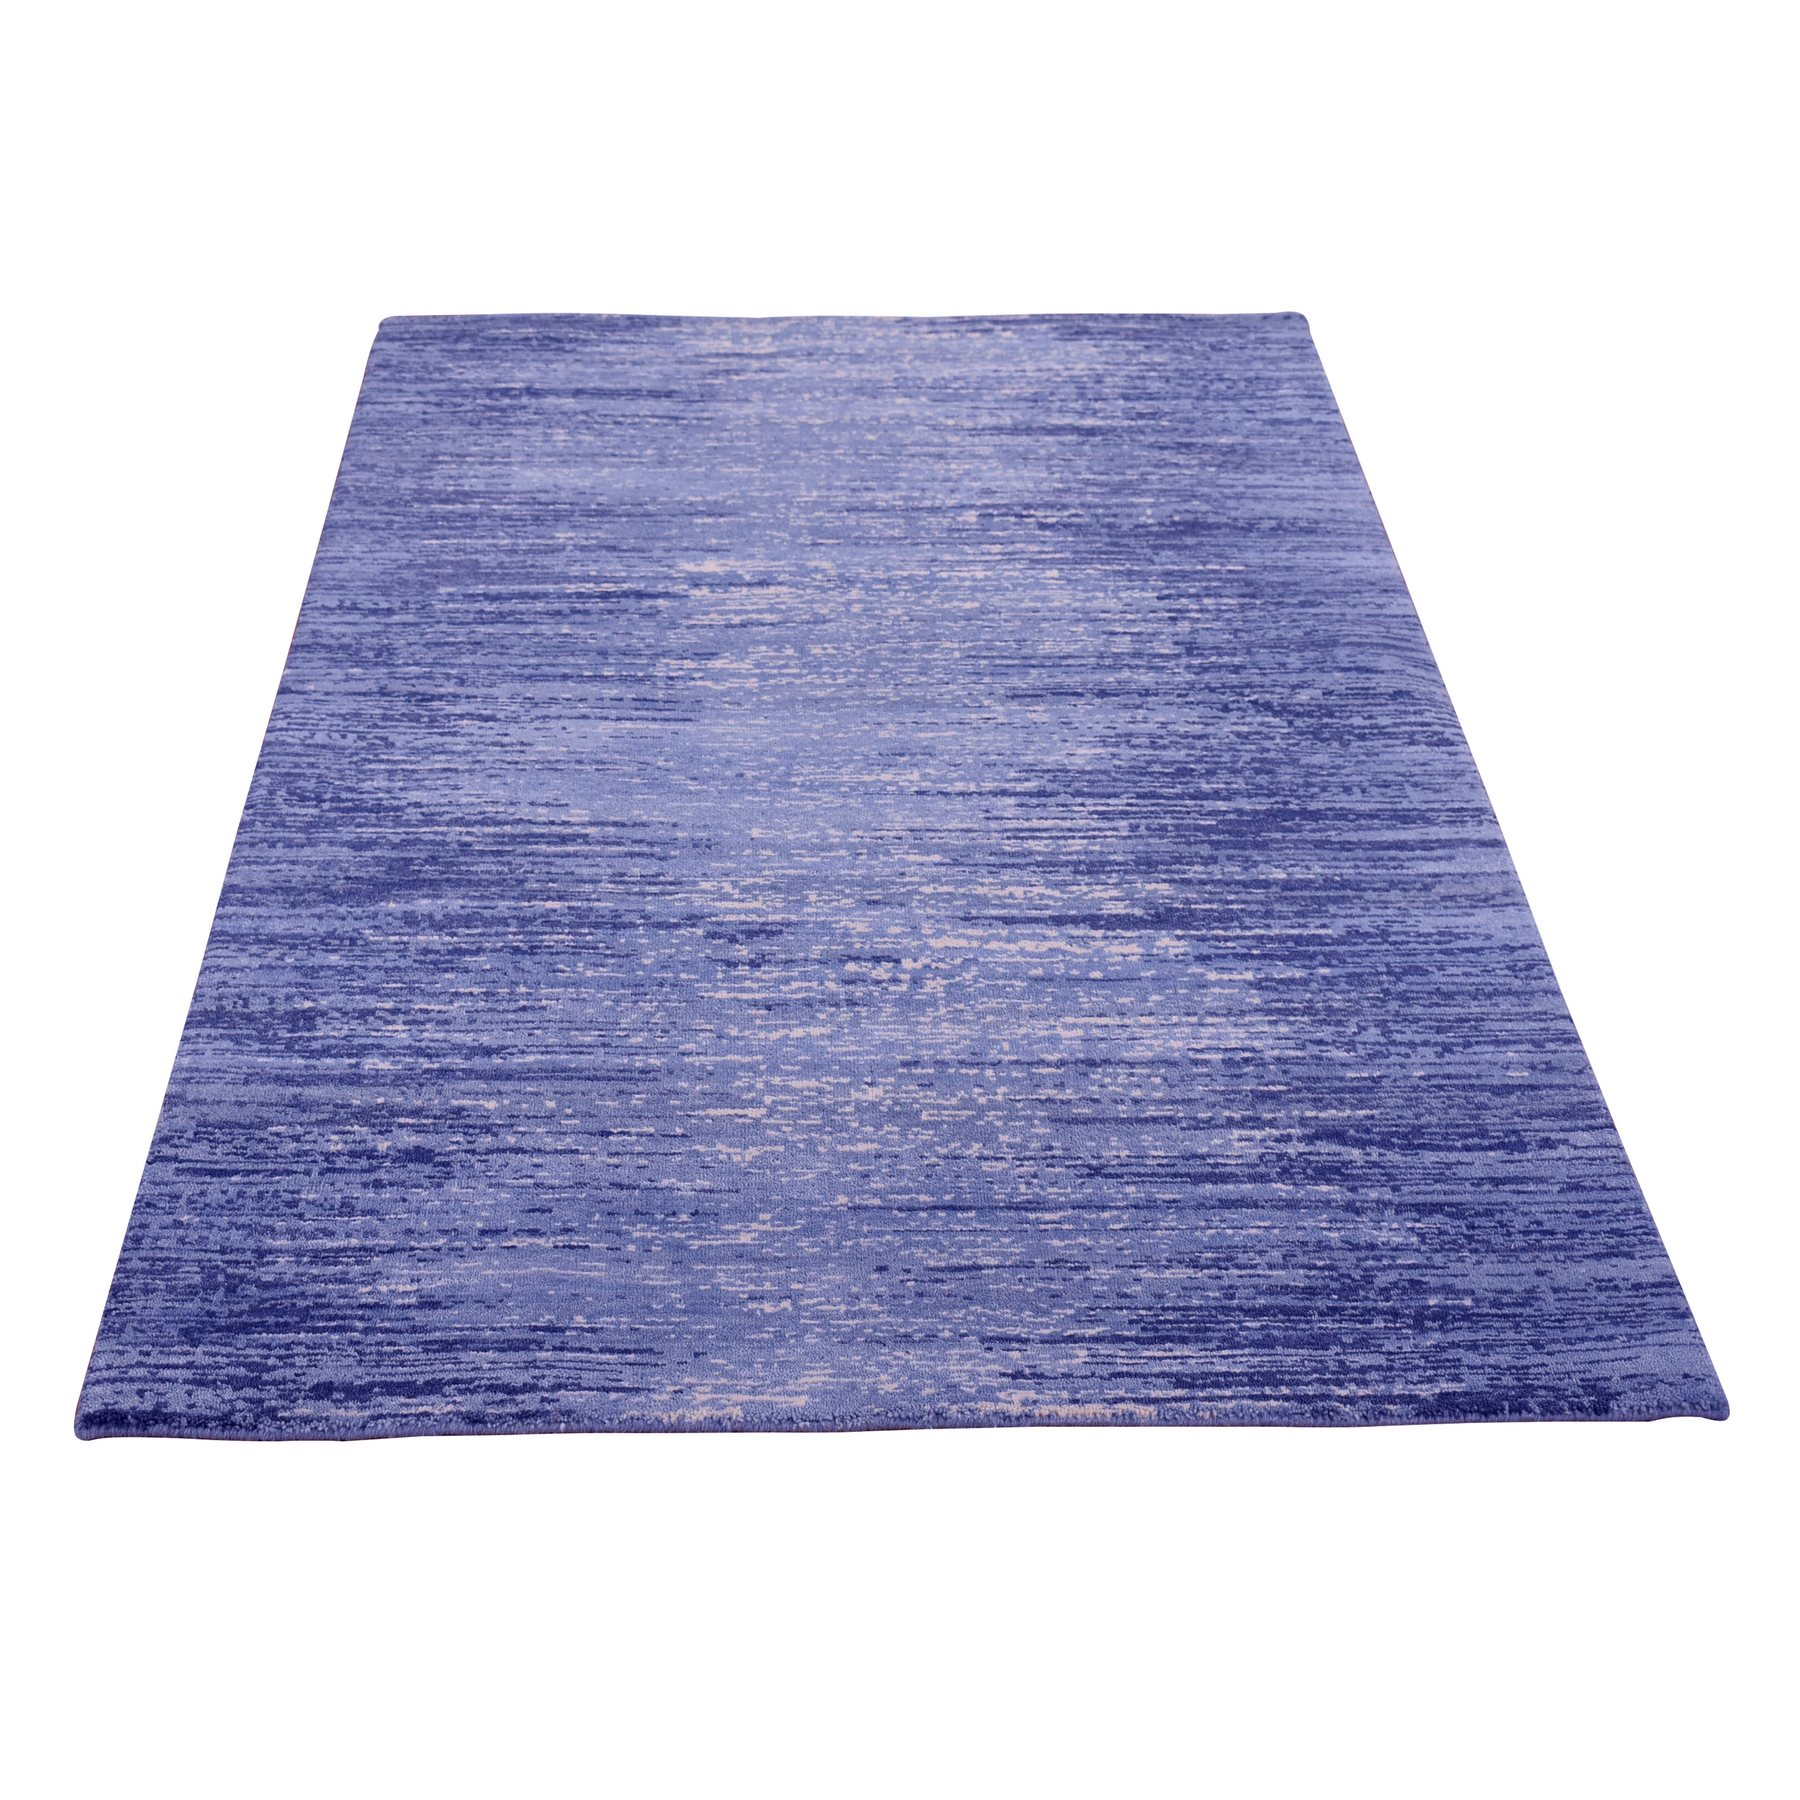 Mid Century Modern Collection Hand Knotted Blue Rug No: 1133762